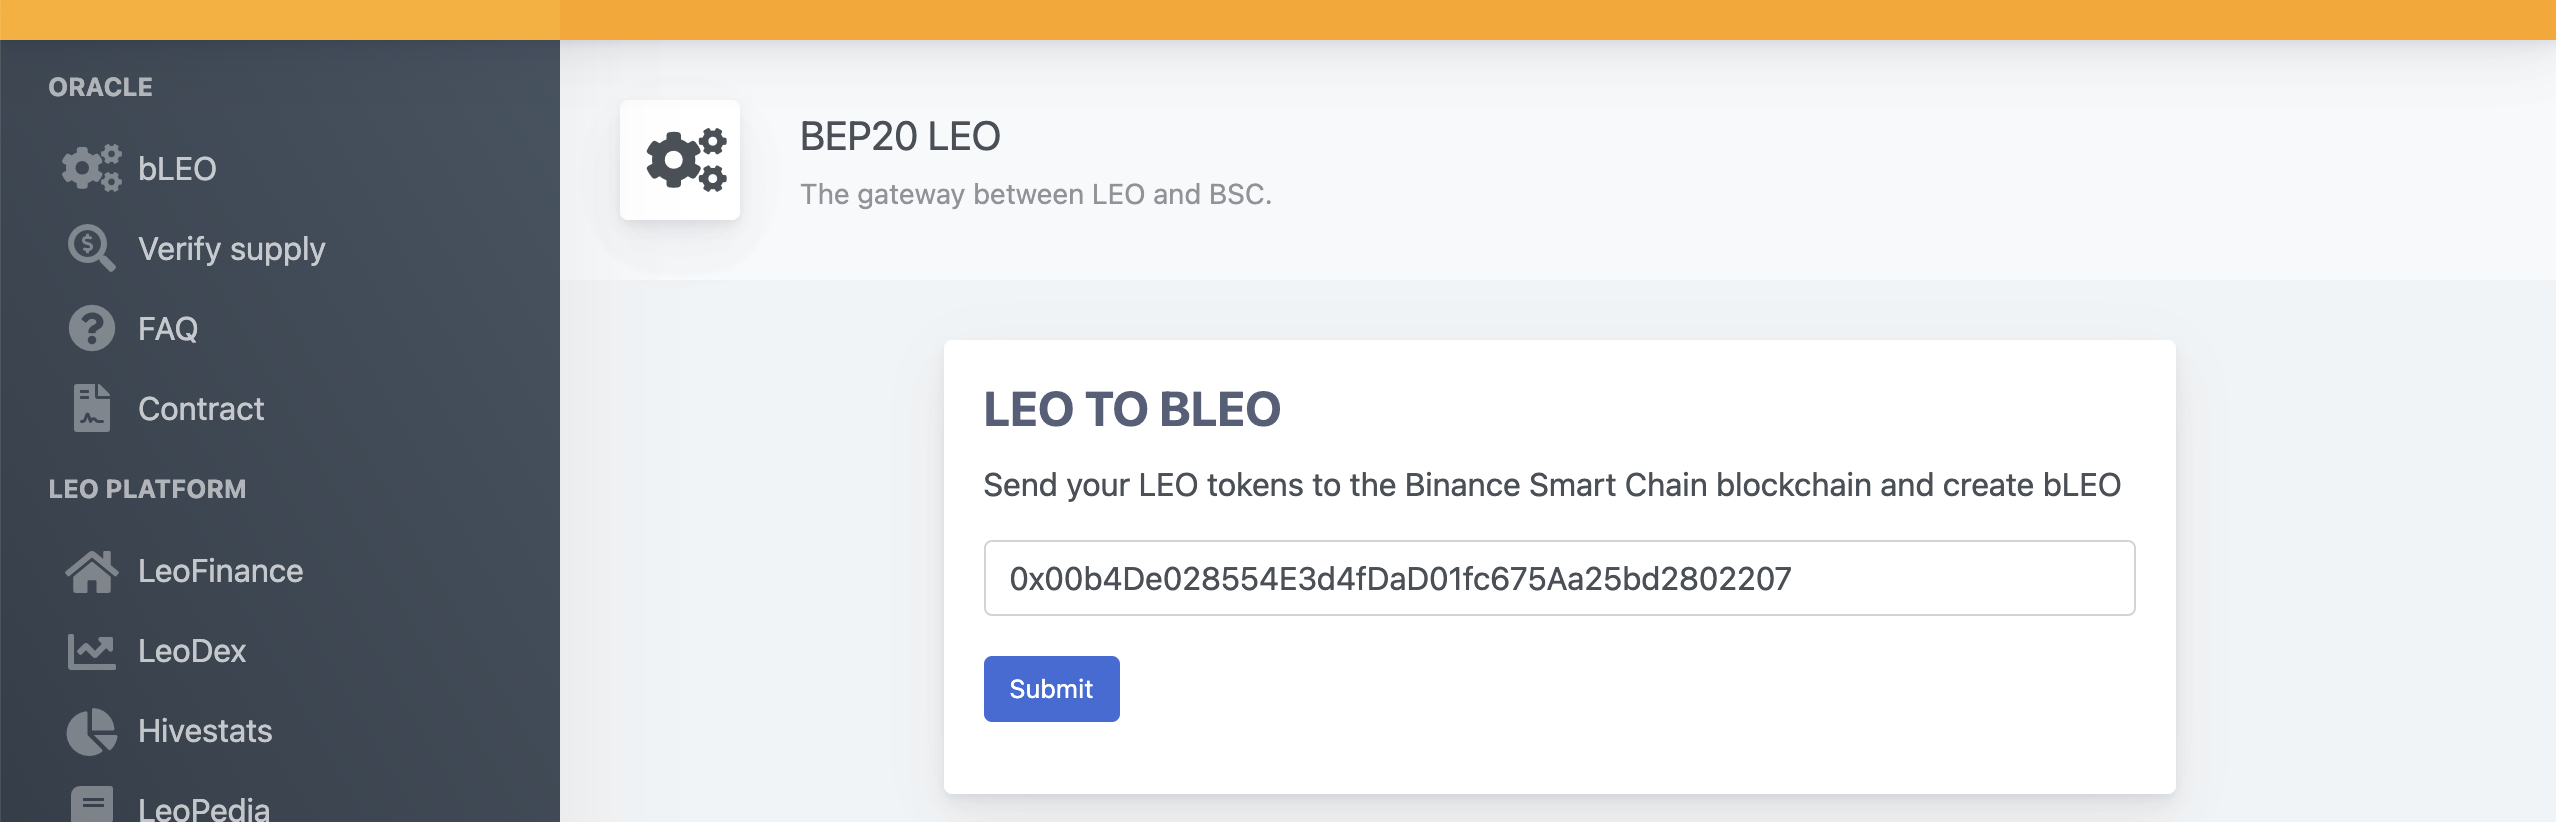 Copy your BSC wallet address from MetaMask.